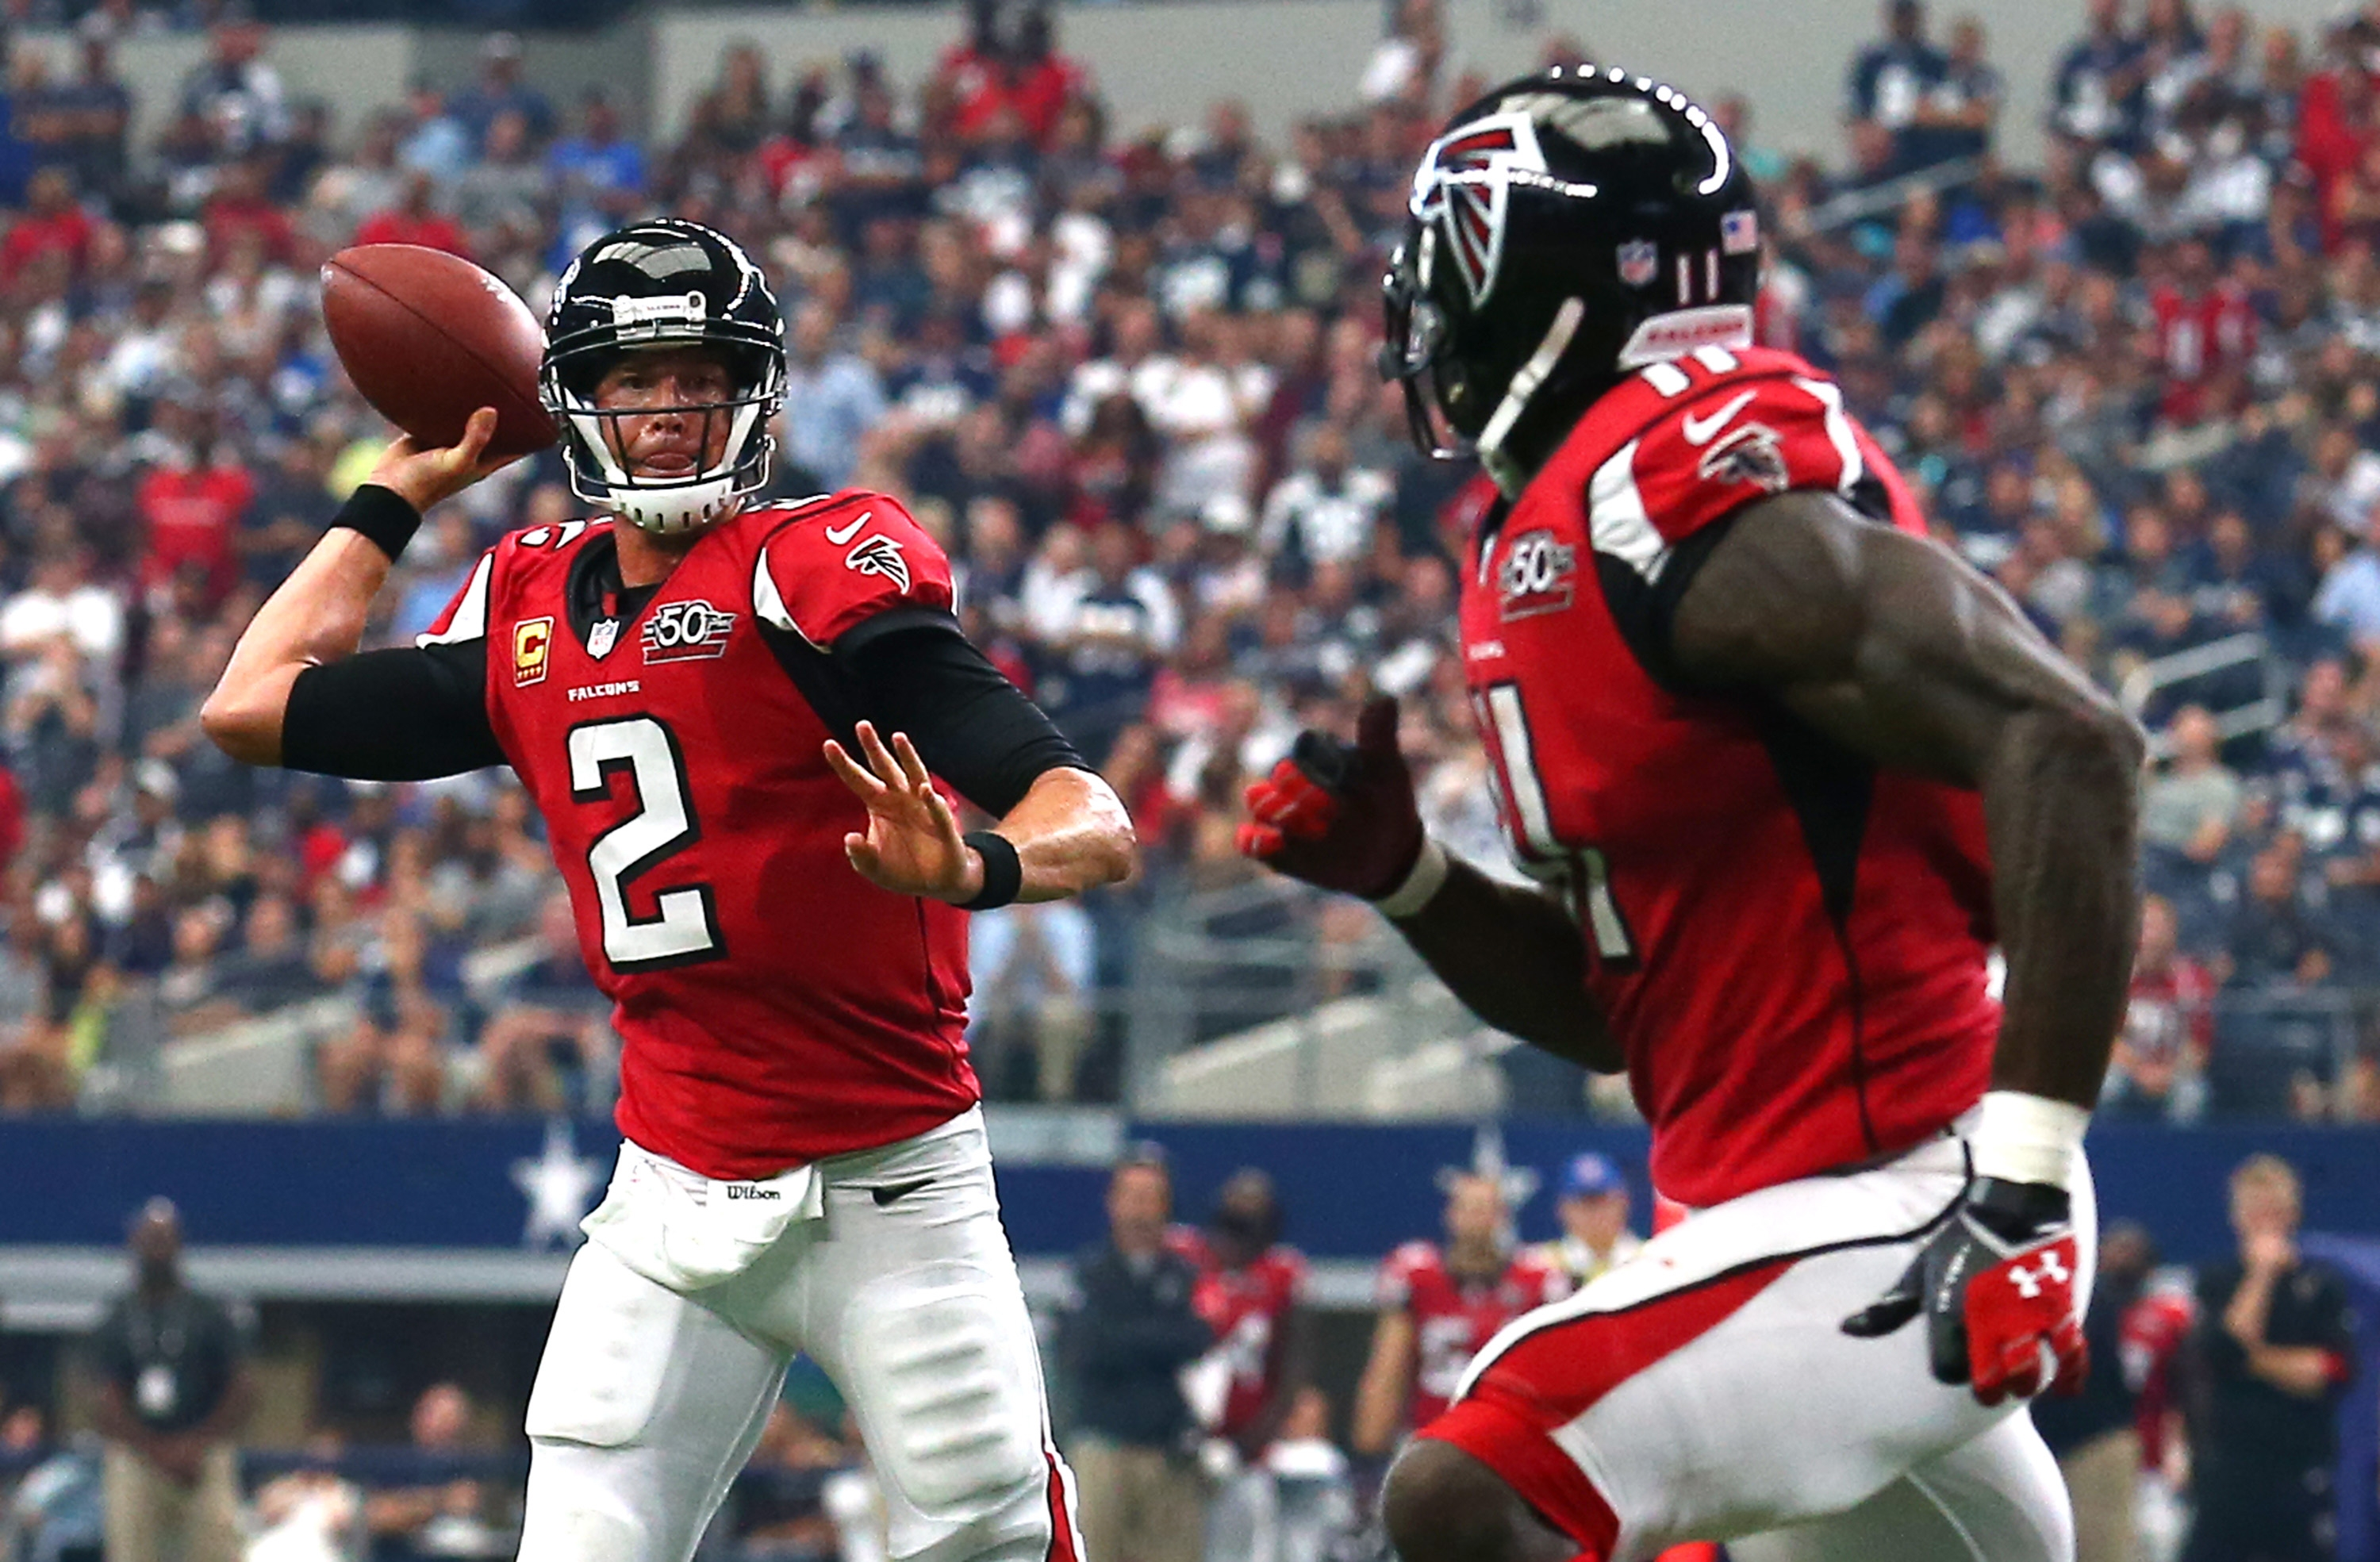 One of the keys in winning DFS fantasy football tournaments is stacking quarterbacks and their top targets -- like Matt Ryan and Julio Jones showed in Week Four.